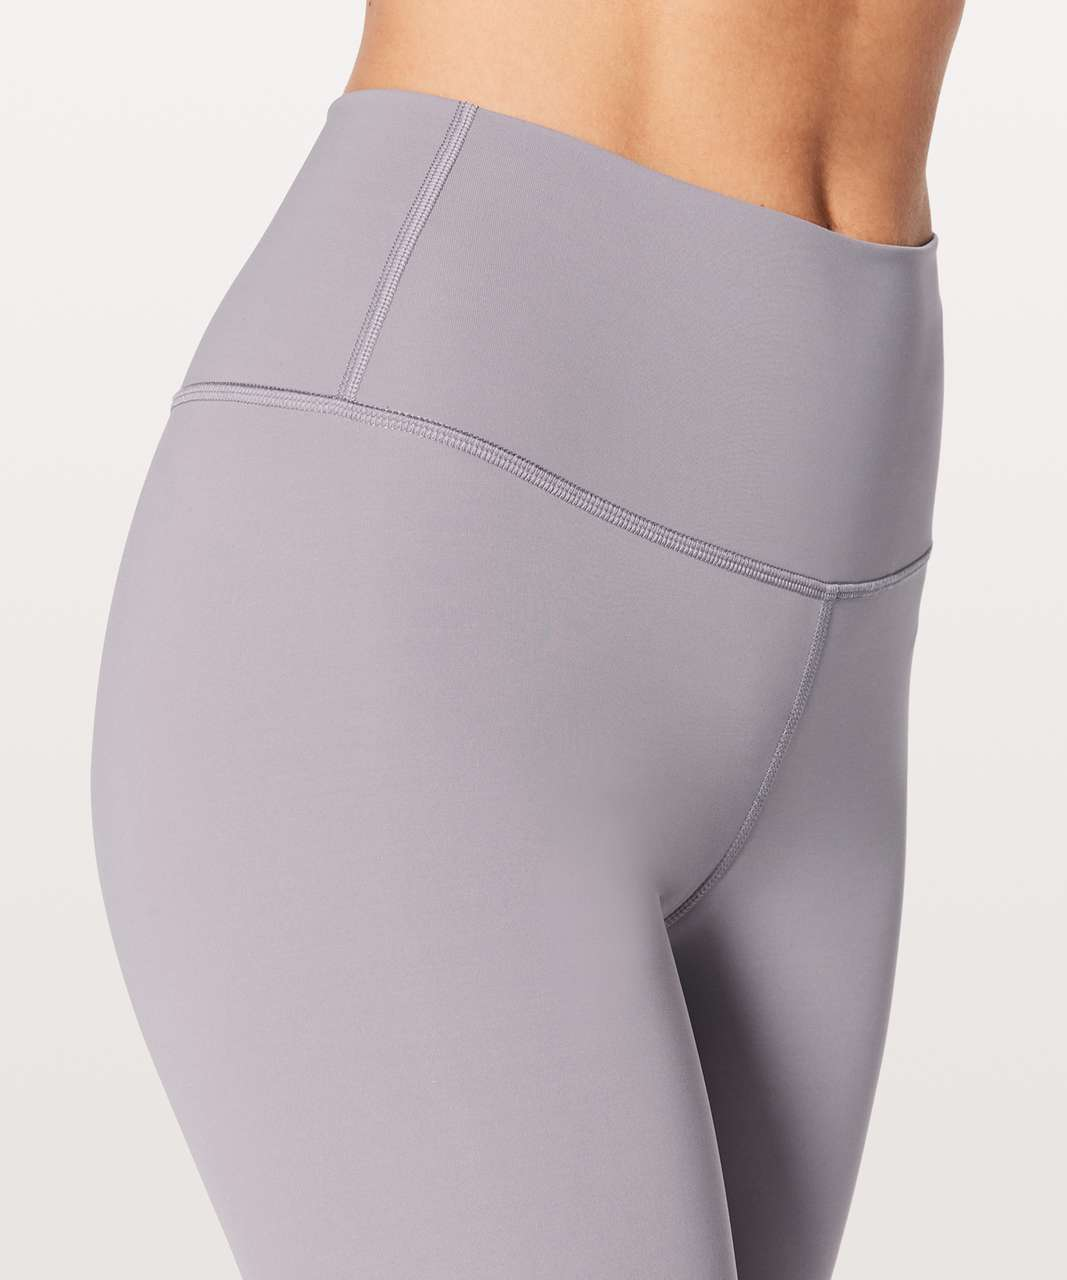 "Lululemon Wunder Under Hi-Rise Tight 28"" - Dusty Dawn"